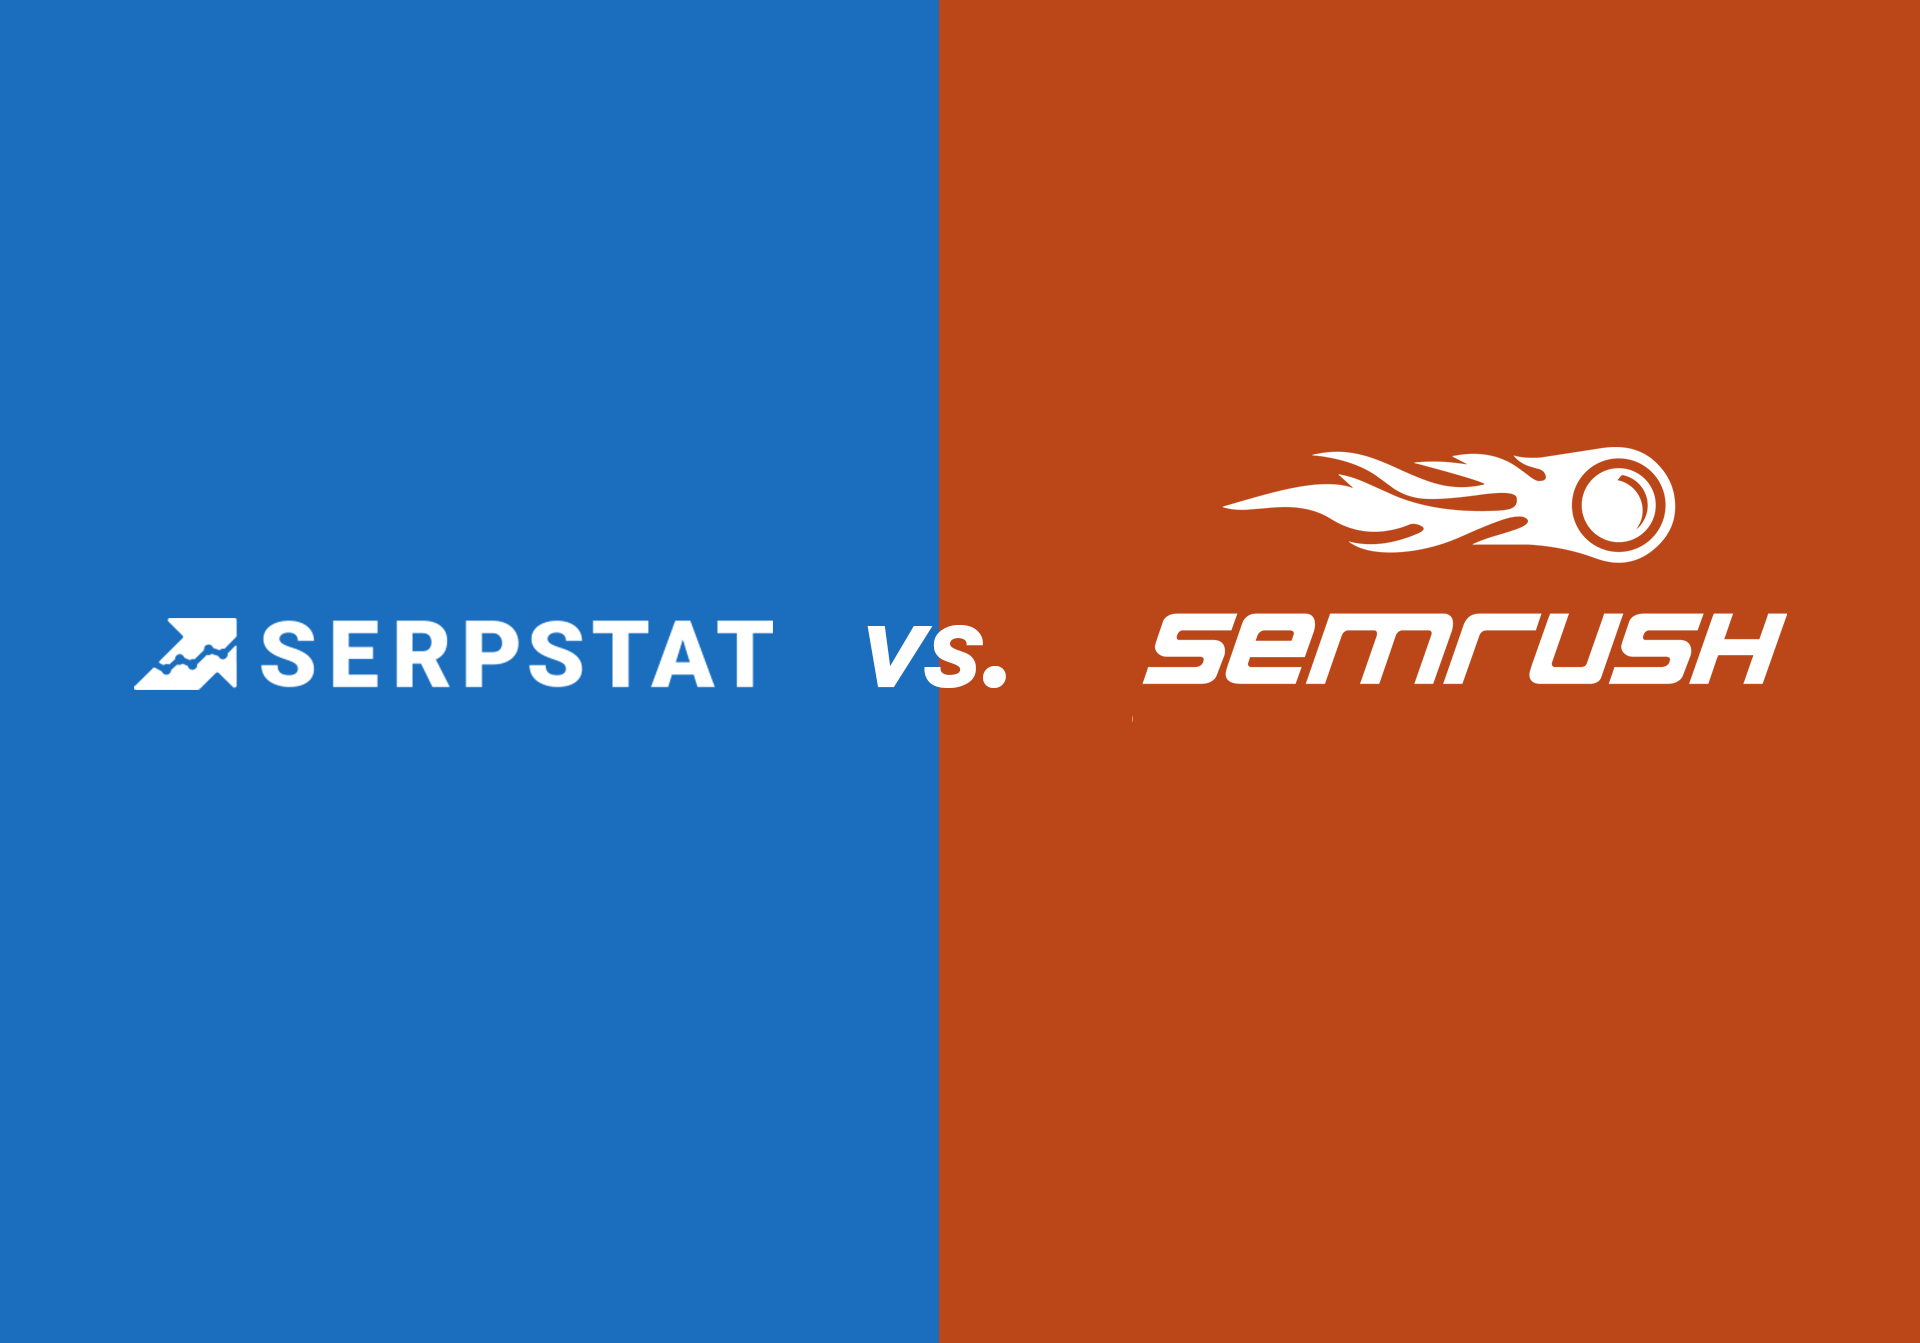 Length Semrush